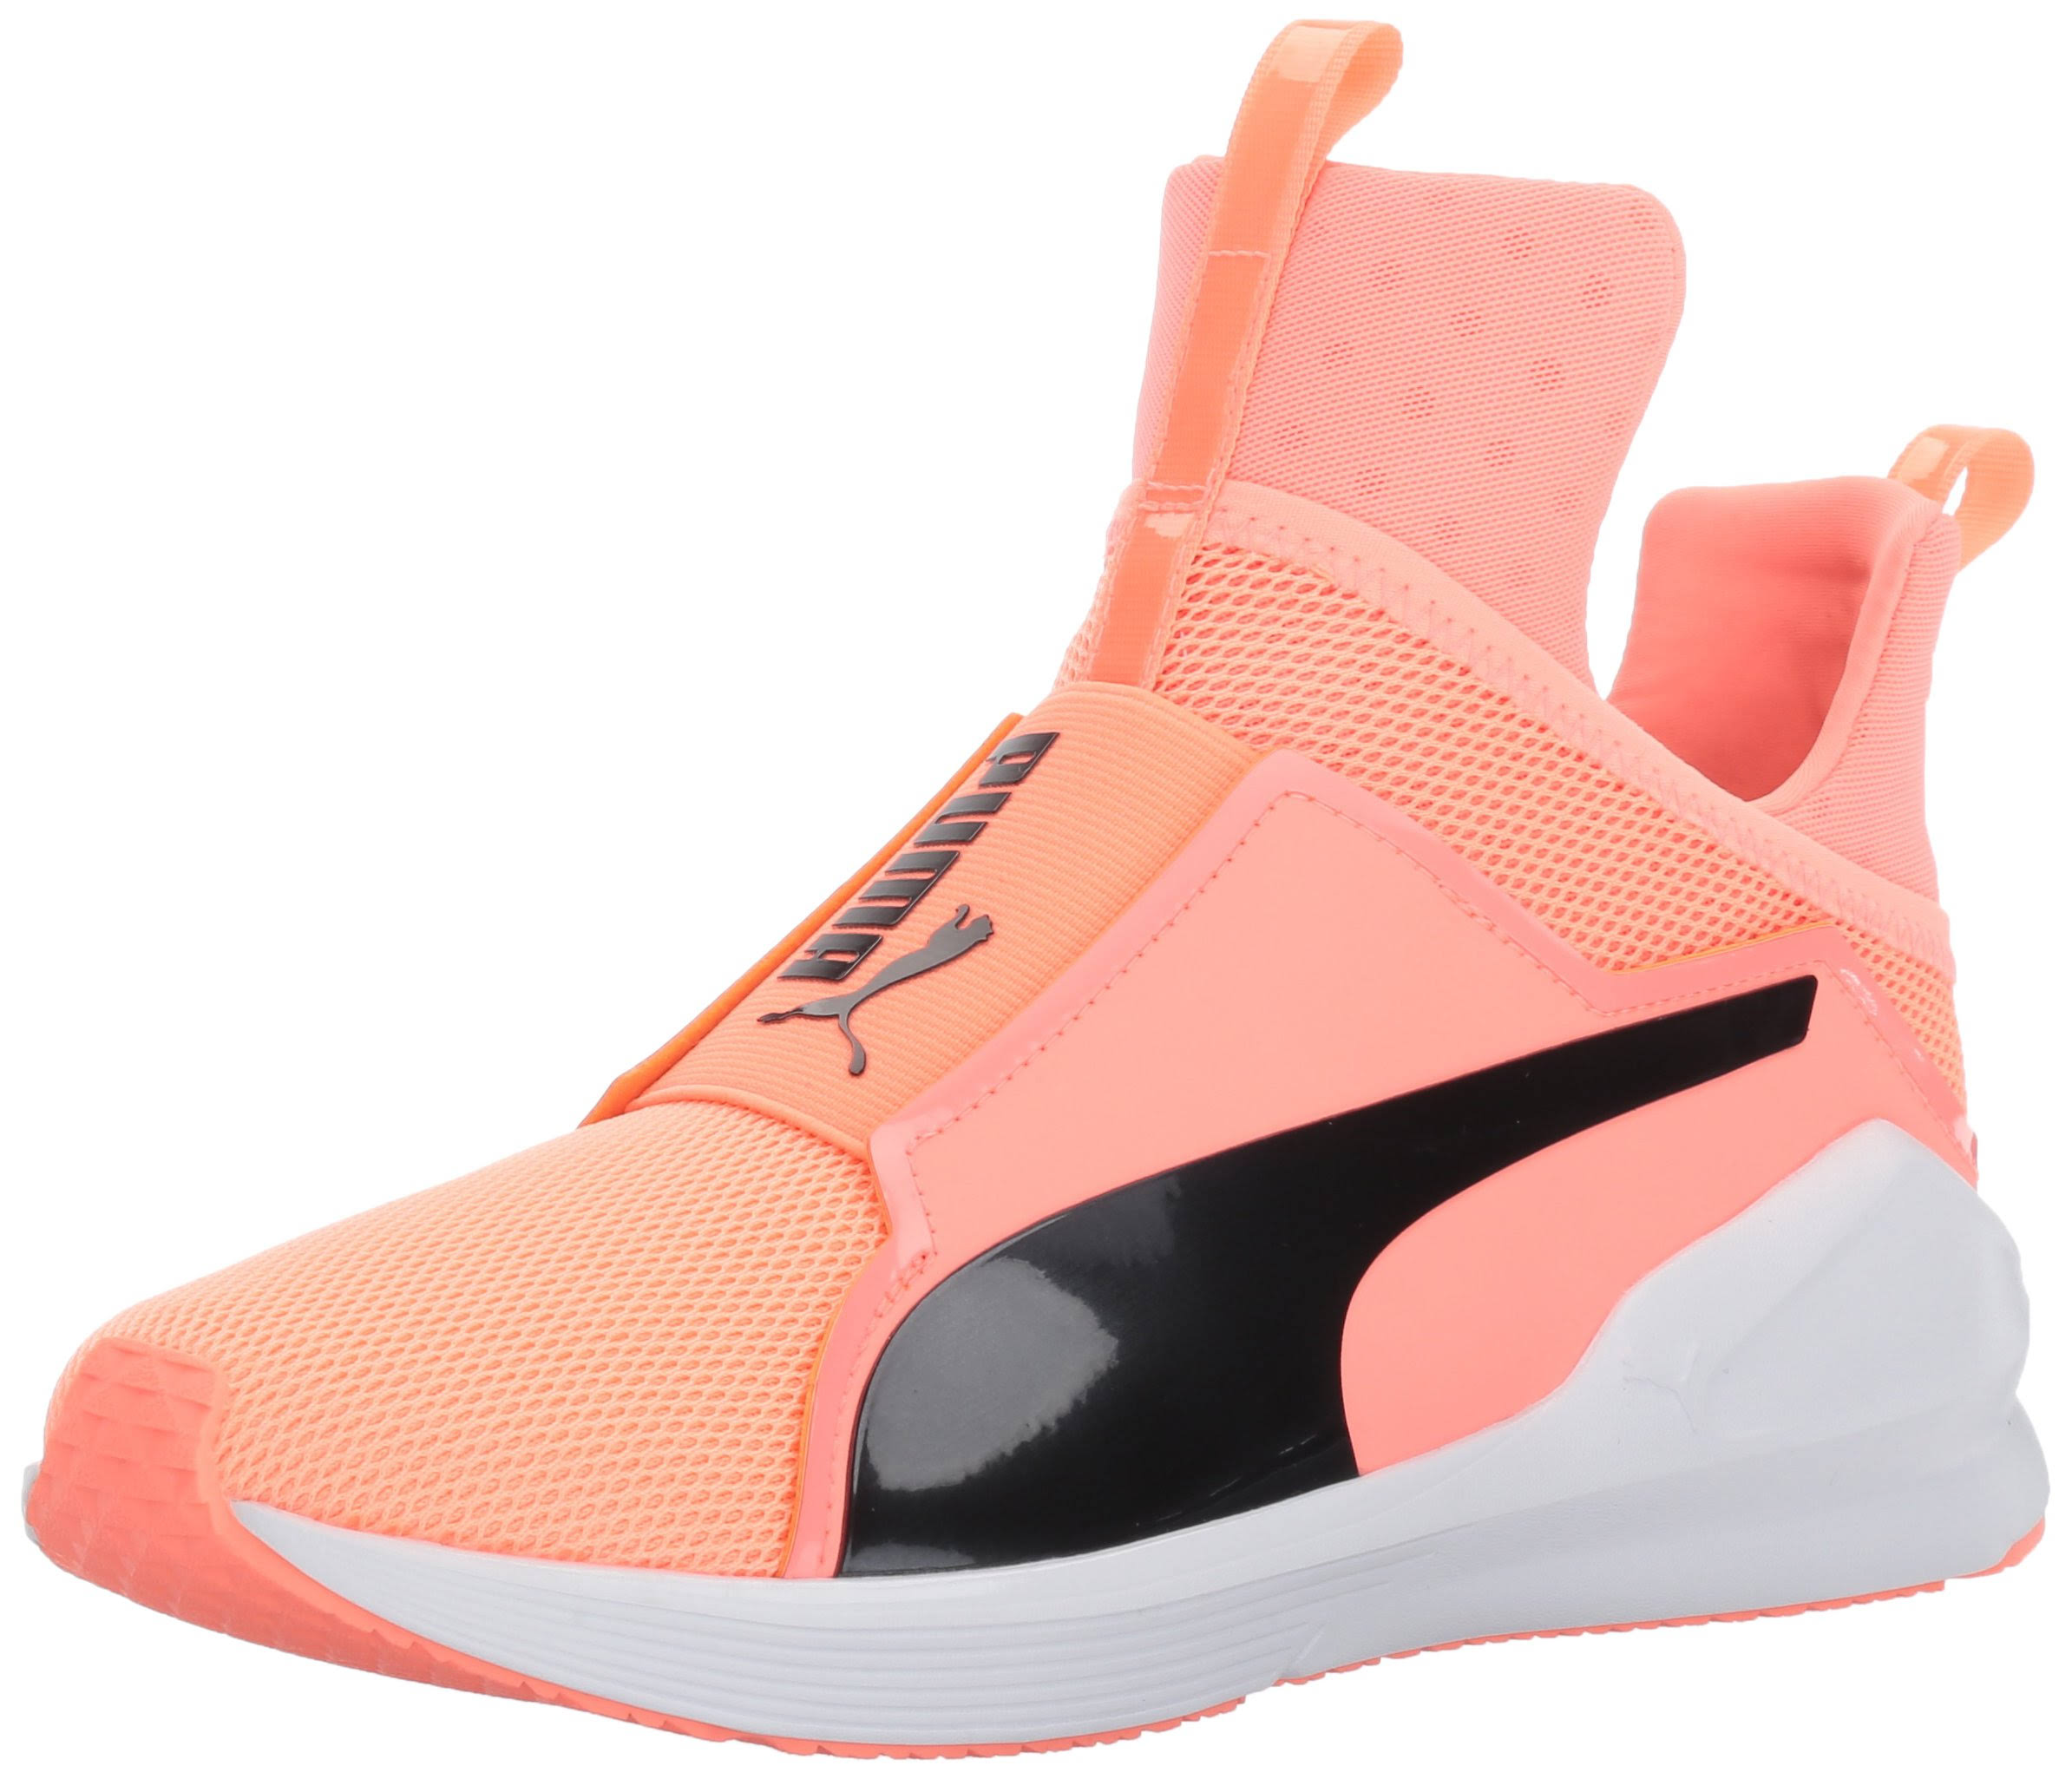 Nrgy De Fierce Core Cross Zapatillas puma Black trainer Puma Mujer Peach 7tdxUwwq0n